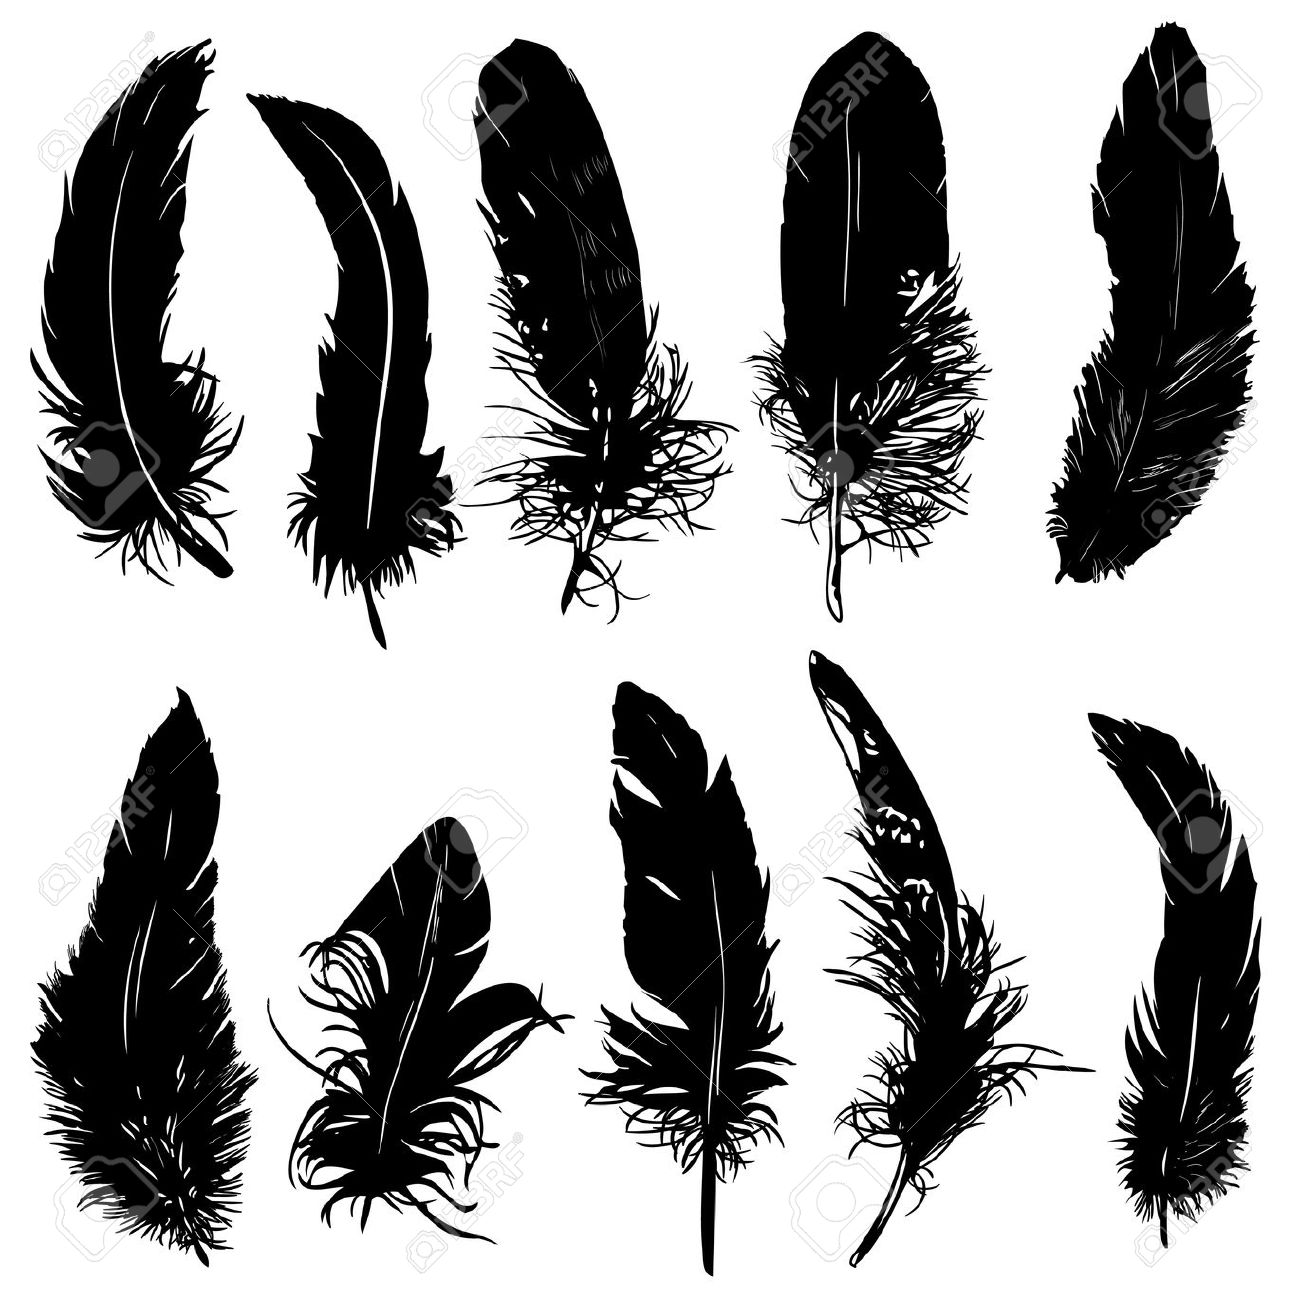 Feather silhouette clipart.